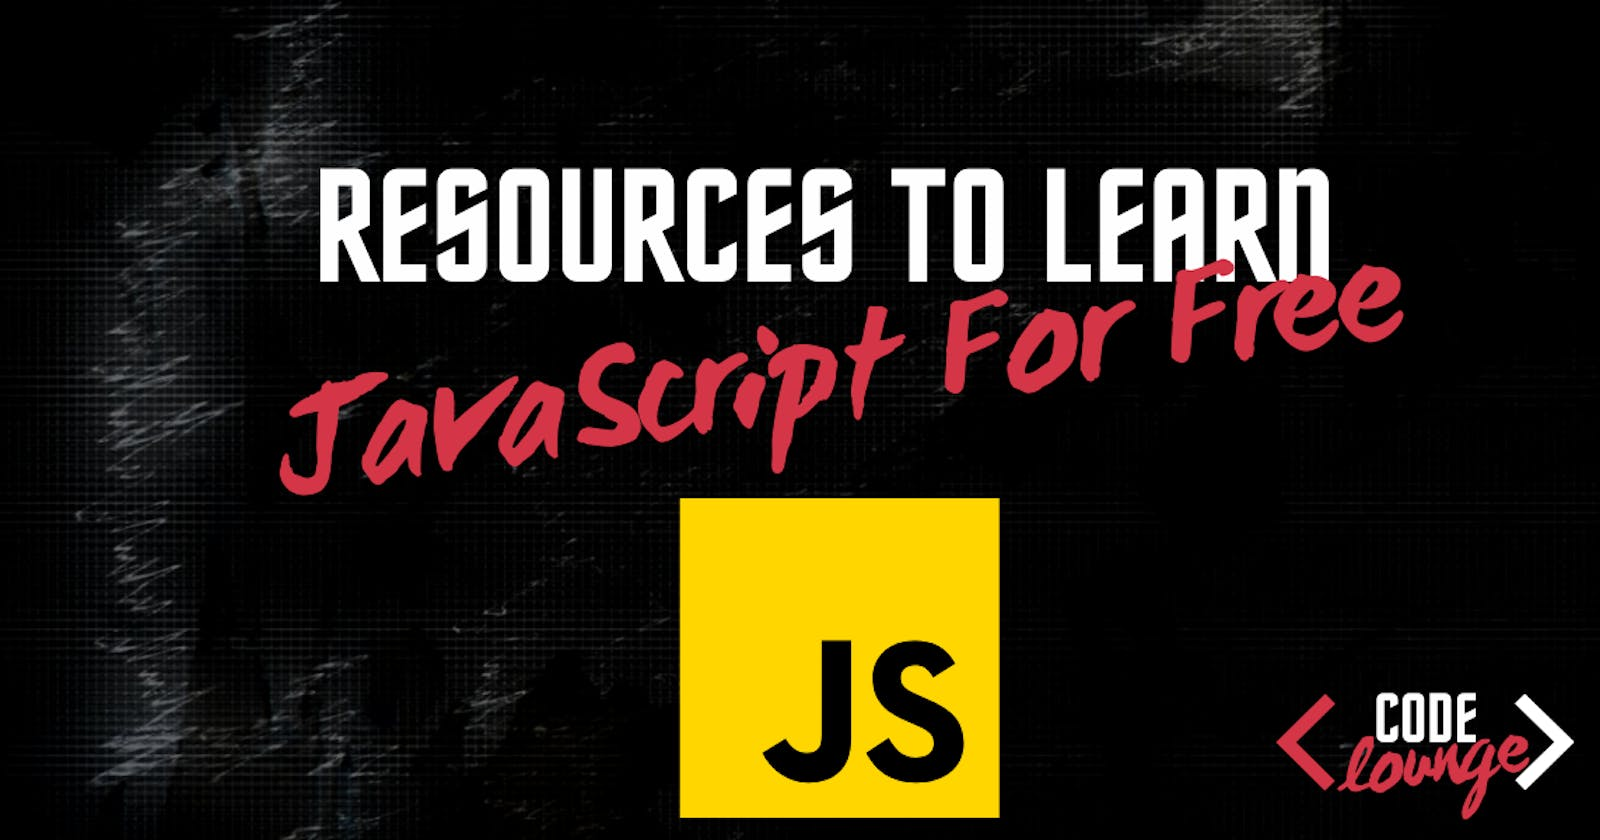 5 Best Resources To Learn JavaScript For Free